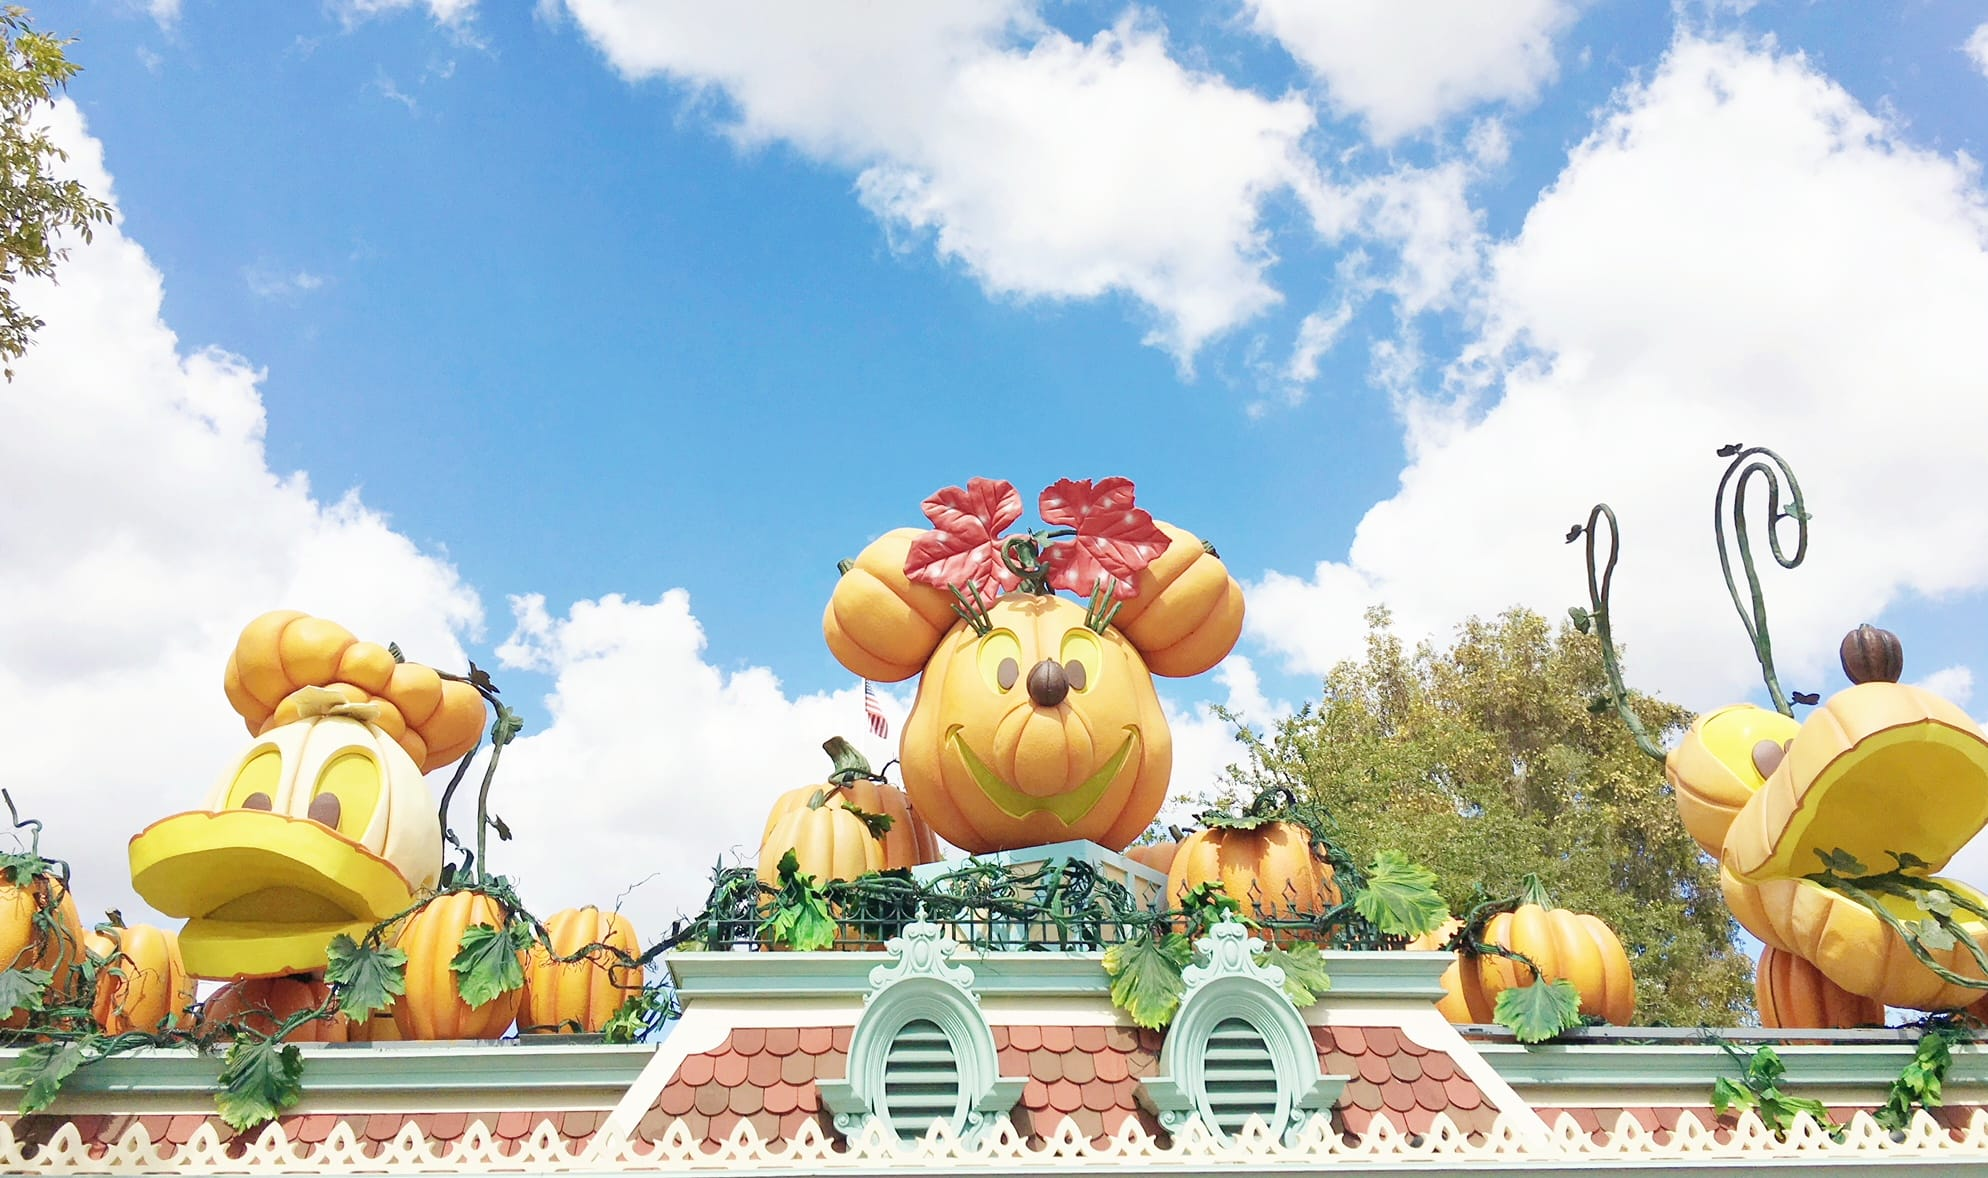 disneyland ticket deals for halloween